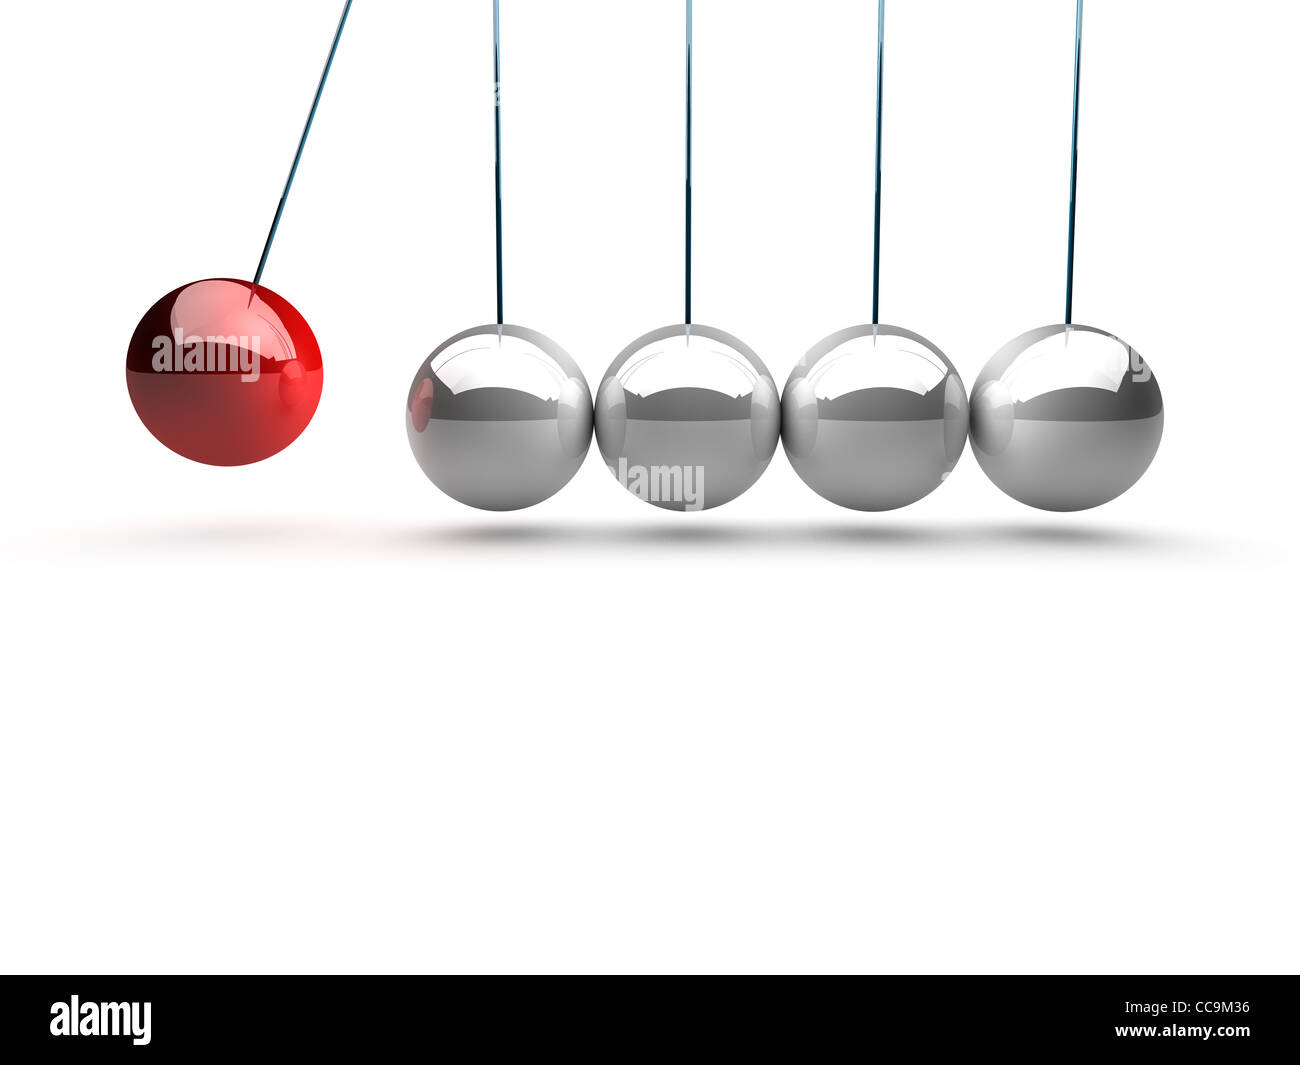 balancing balls newtons cradle over white background - Stock Image